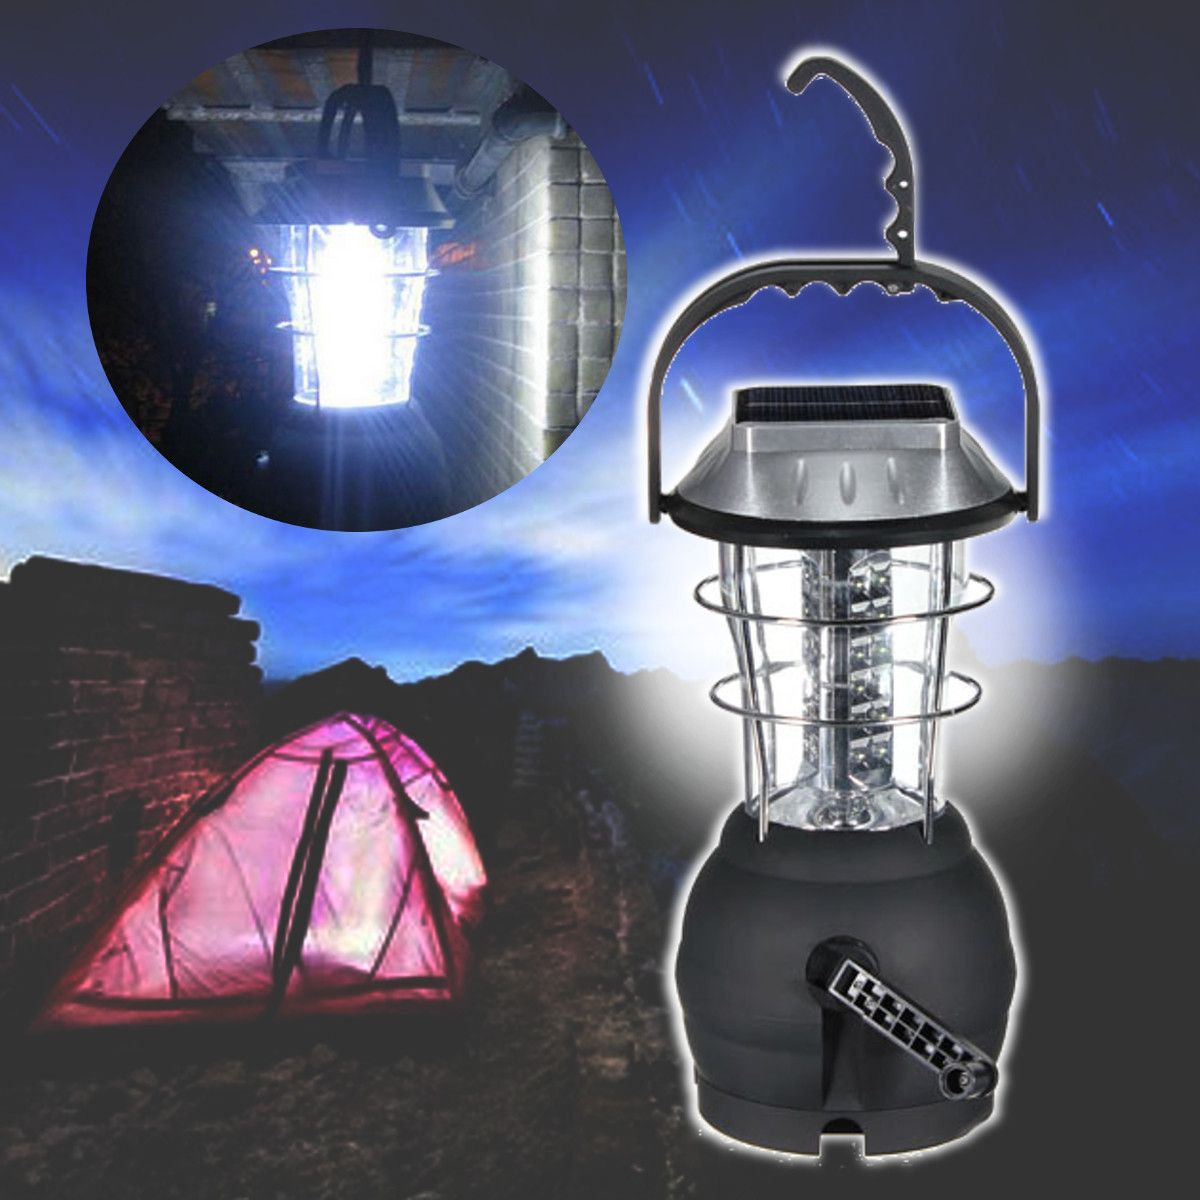 Outdoor 36 leds solar light lantern rechargeable tent lamp hand outdoor 36 leds solar light lantern rechargeable tent lamp hand crank dynamo for camping hiking mozeypictures Image collections